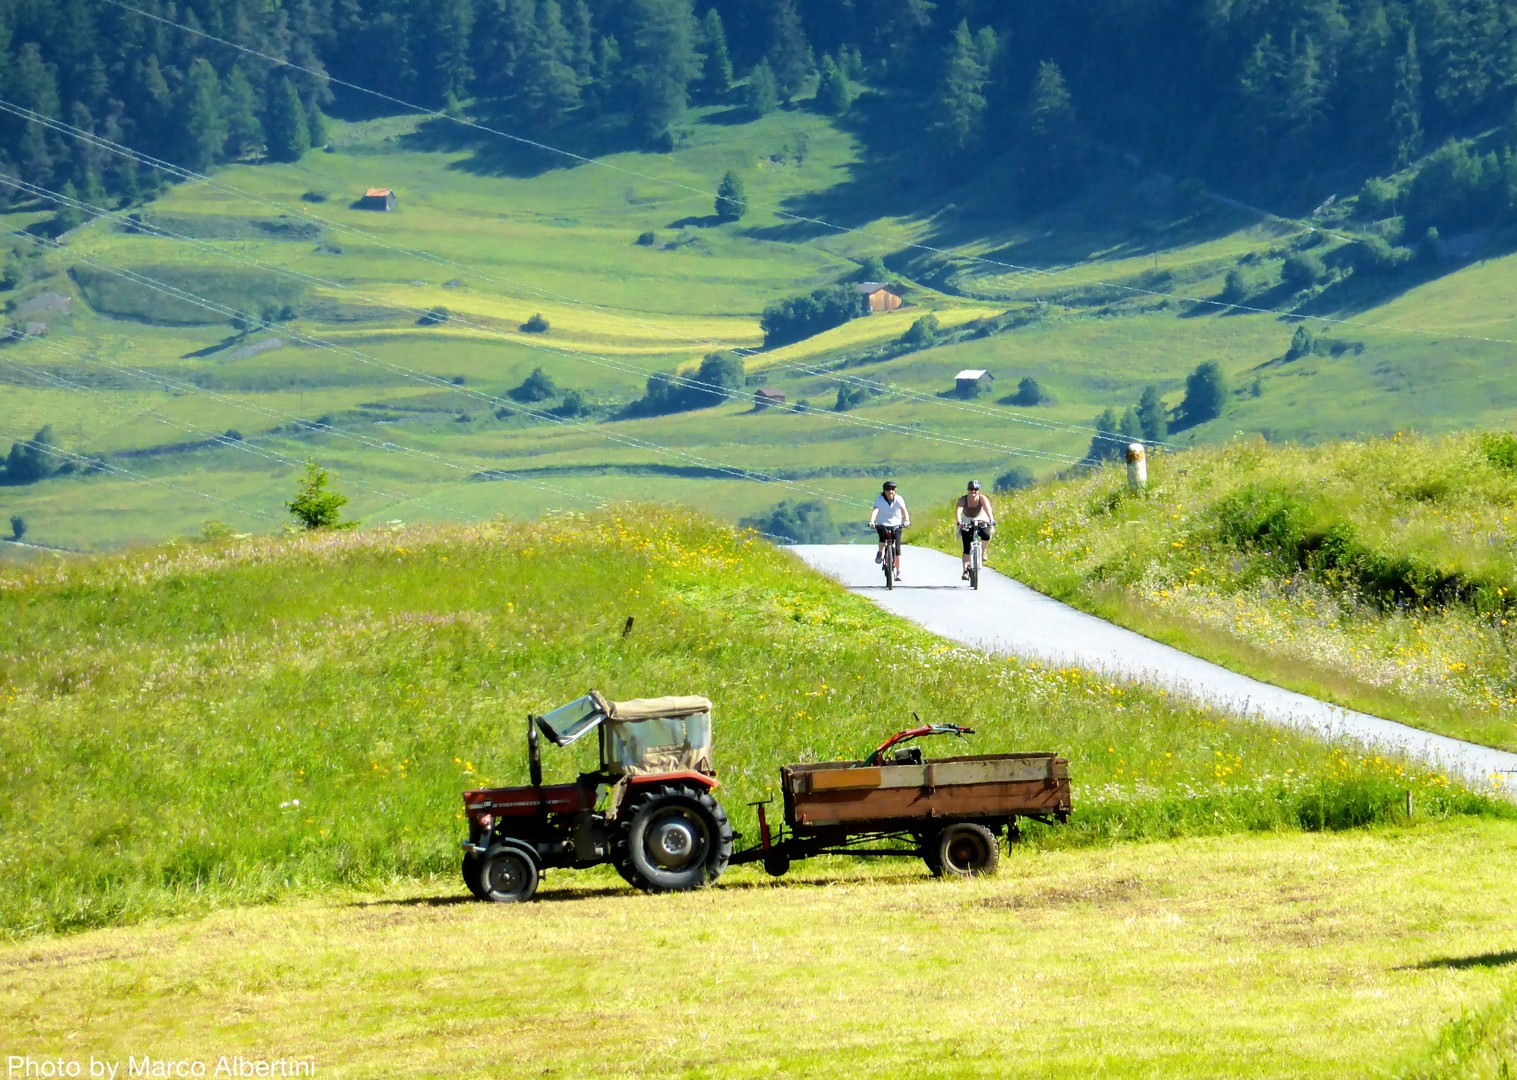 picturesque-leisurely-guided-cycling-italy.jpg - Austria and Italy - La Via Claudia - Guided Leisure Cycling Holiday - Leisure Cycling